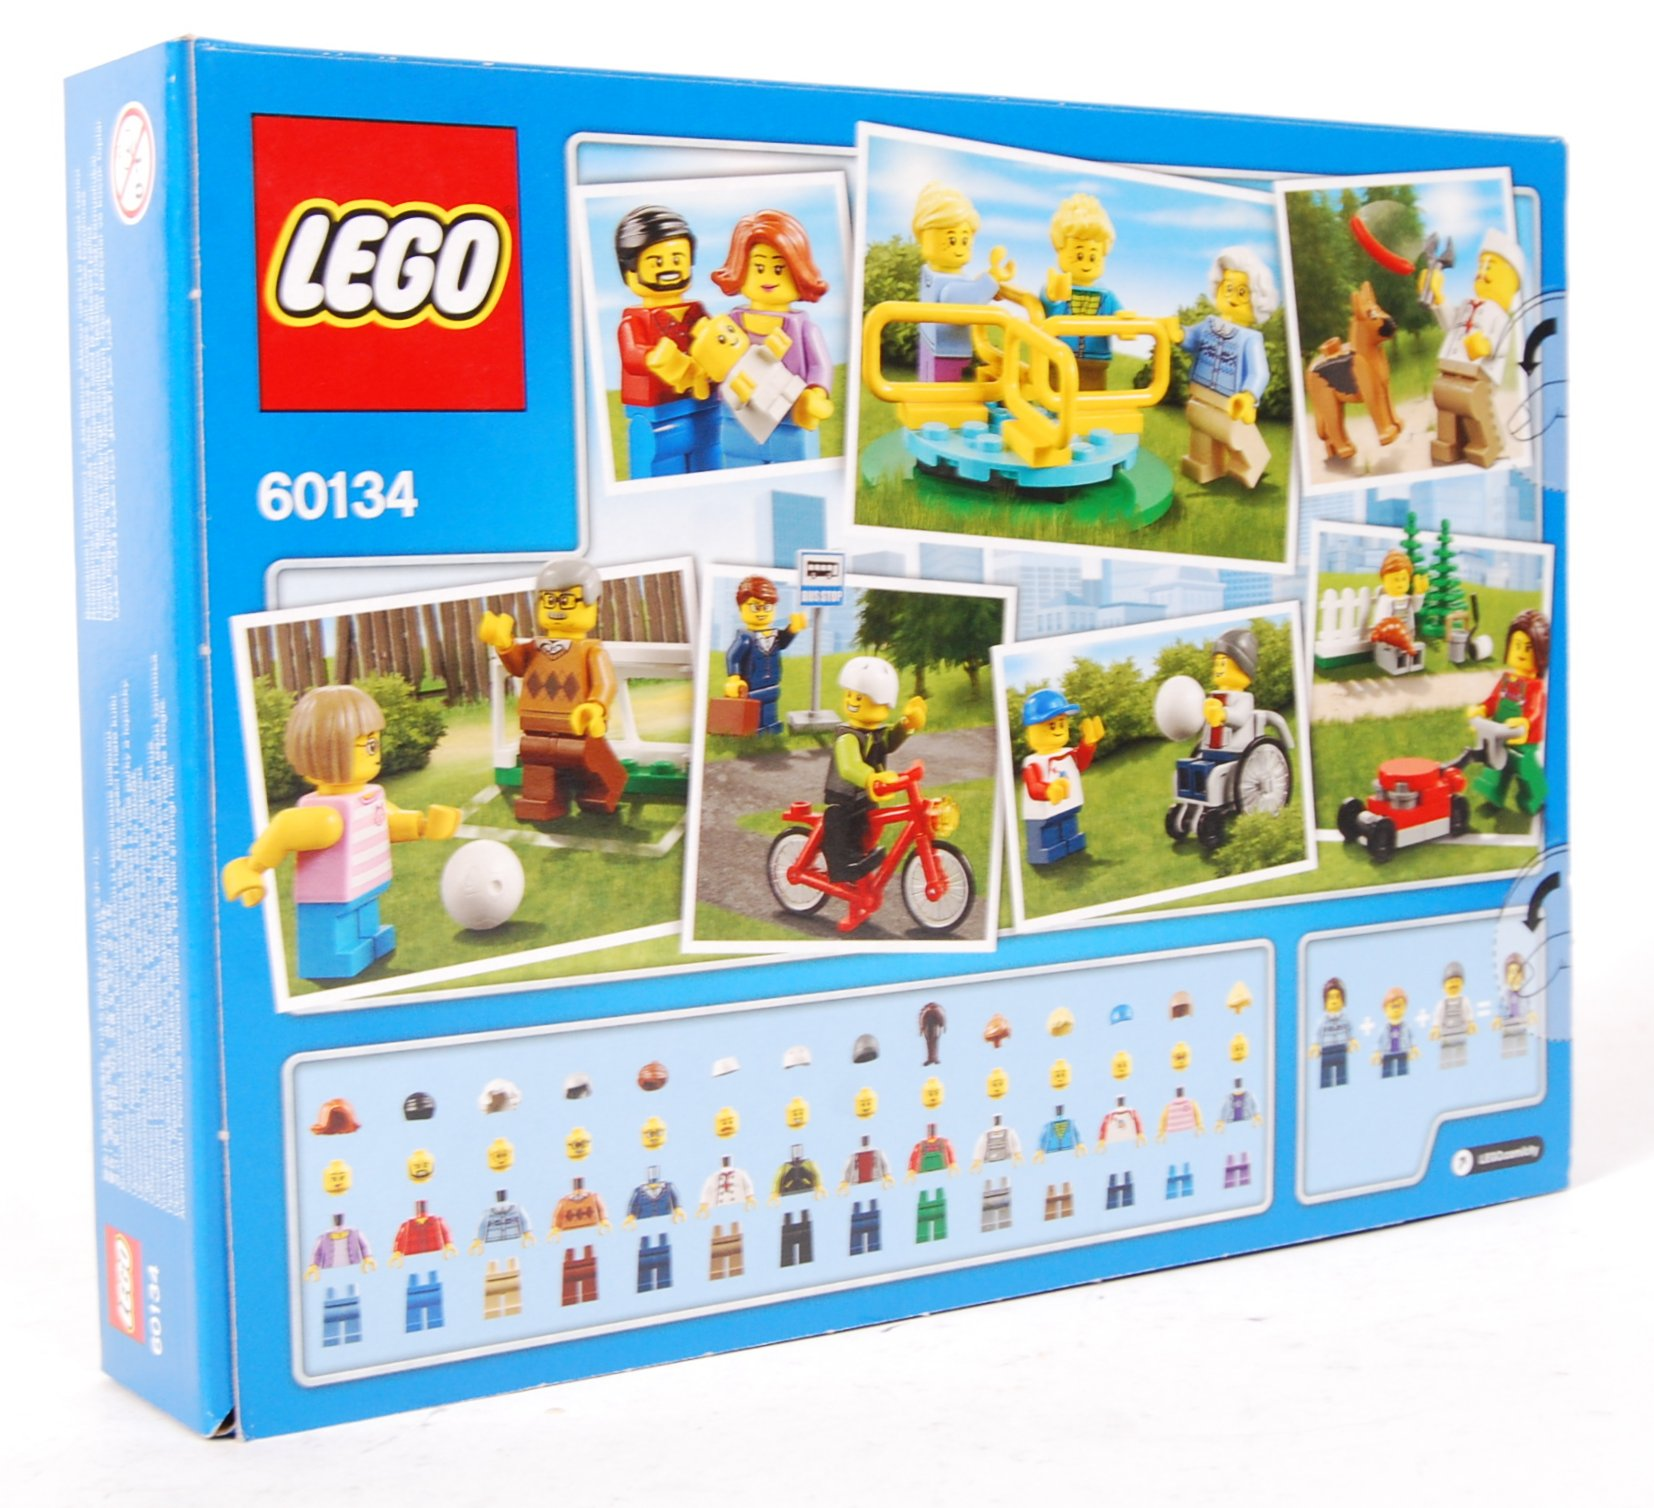 LEGO CITY SET NO. 60134 FUN IN THE PARK - Image 2 of 2